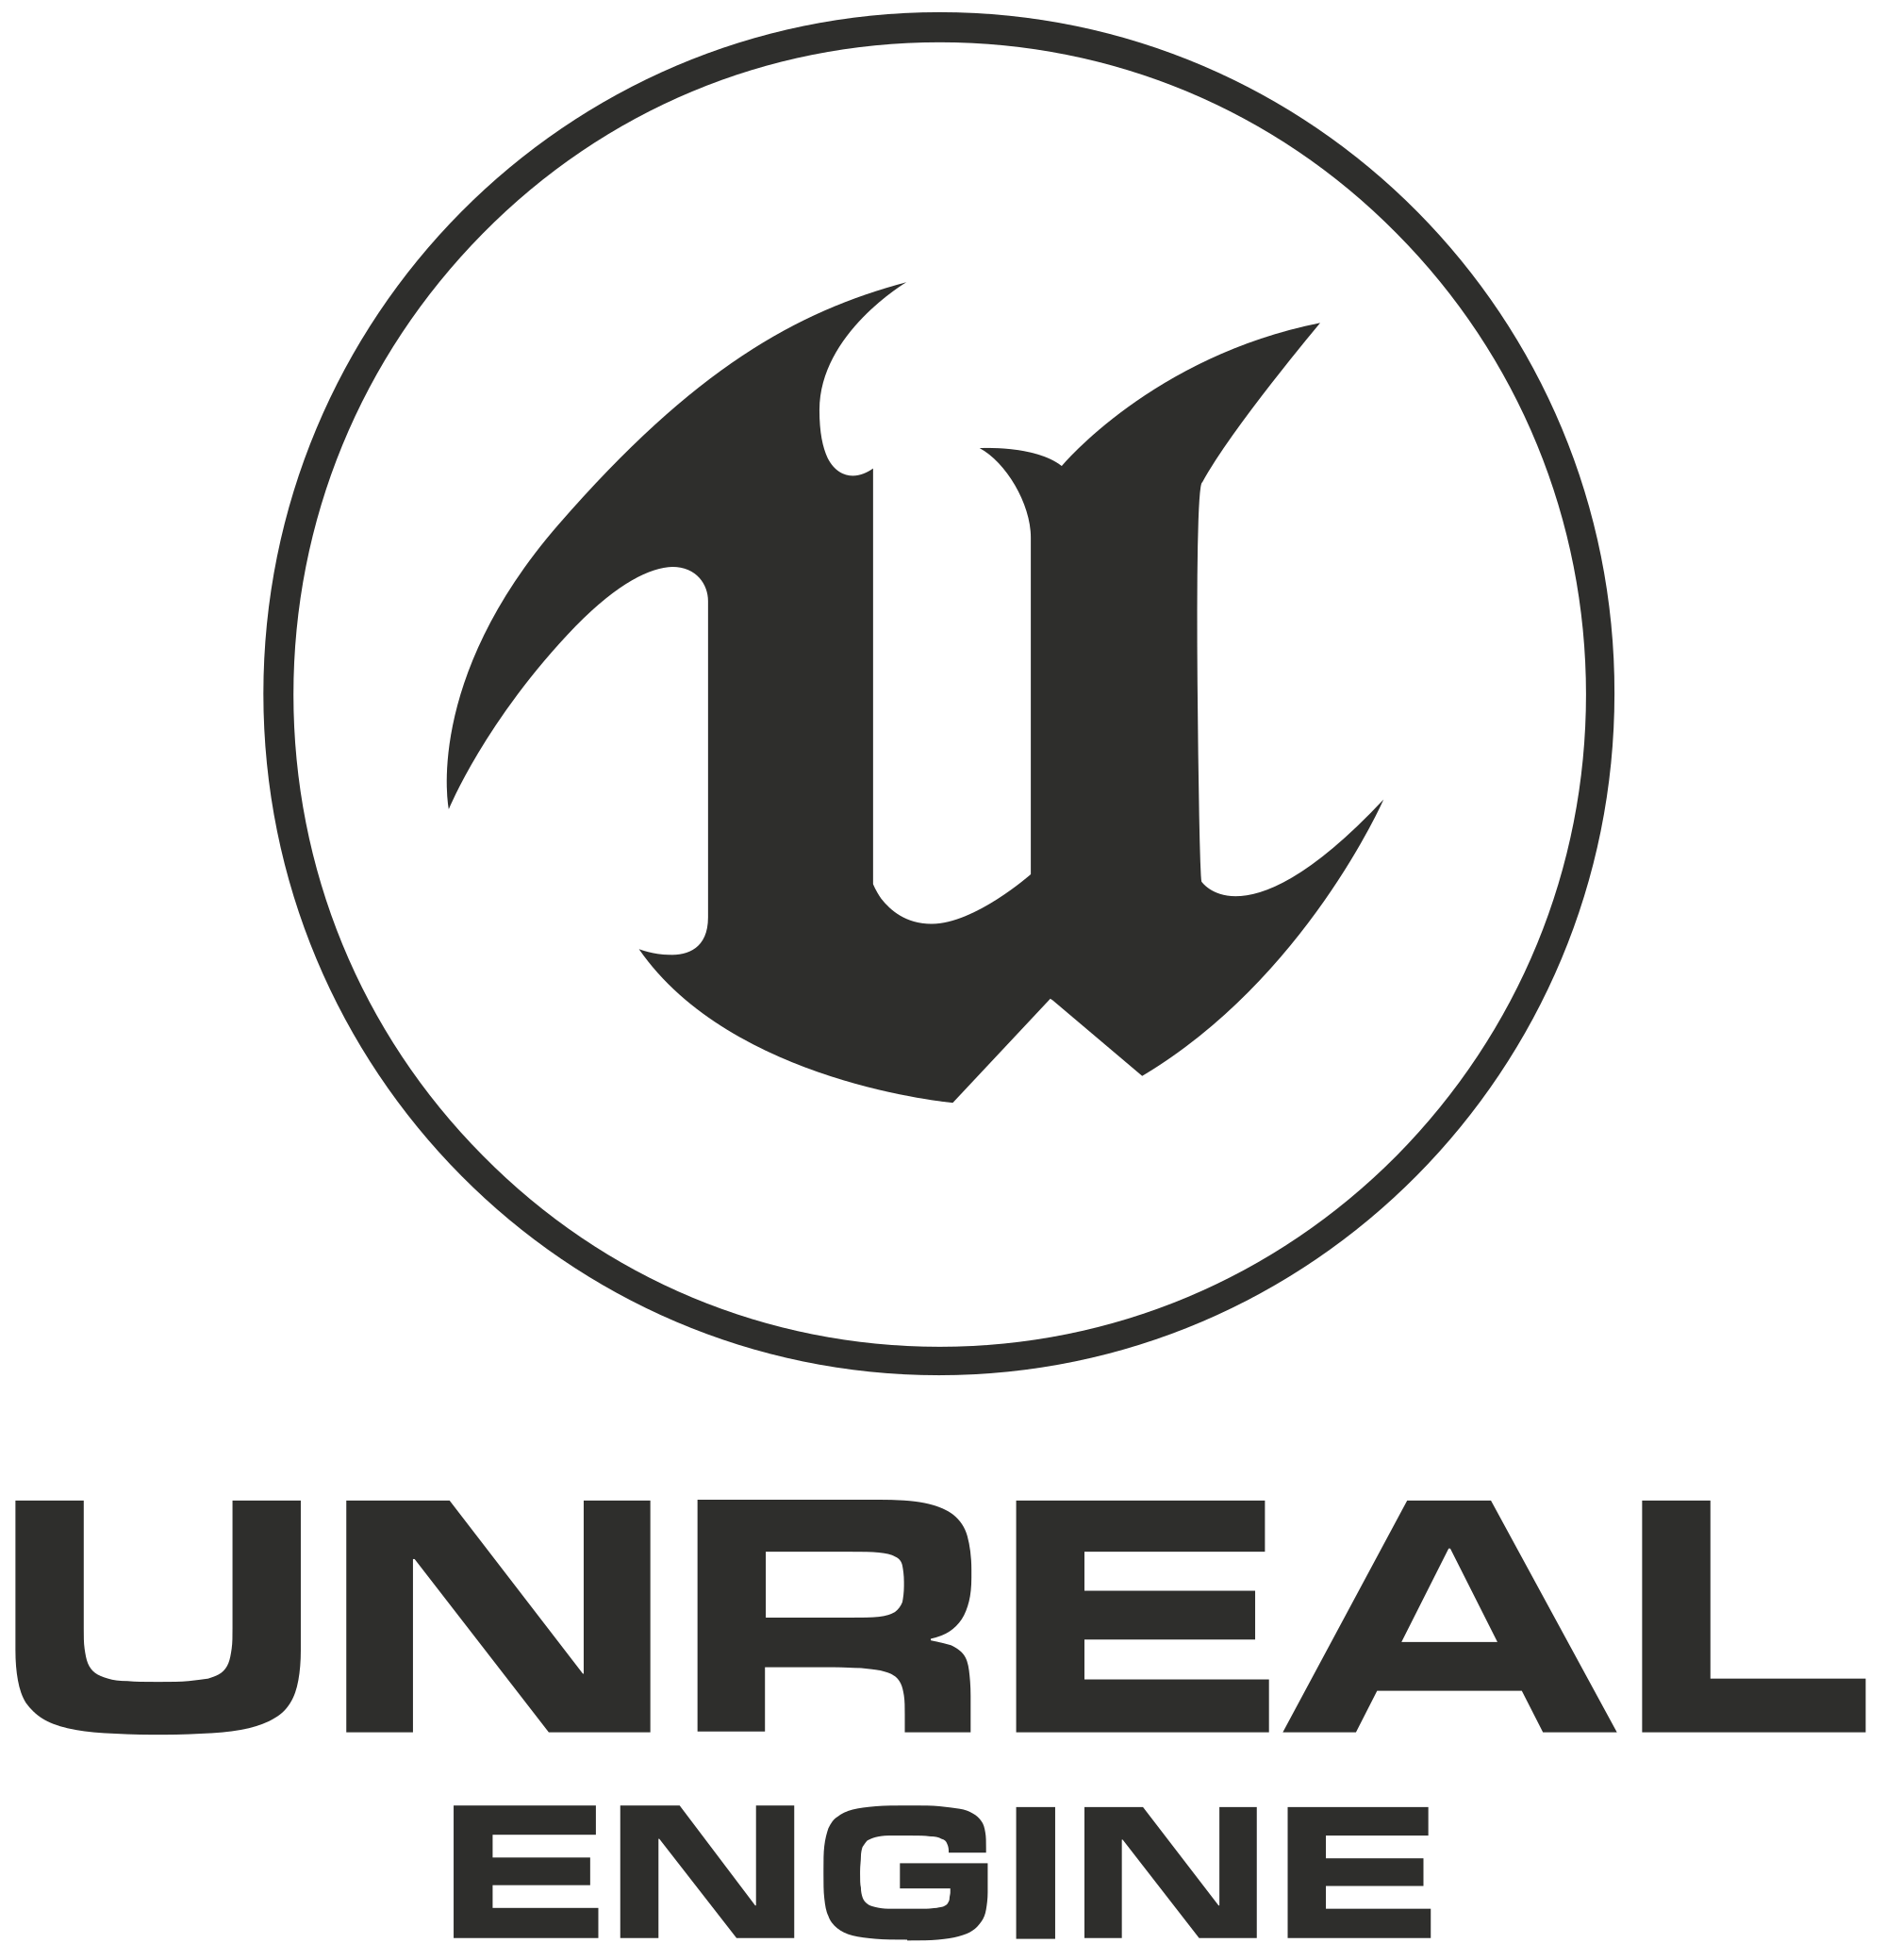 Unreal Engine Team-logo